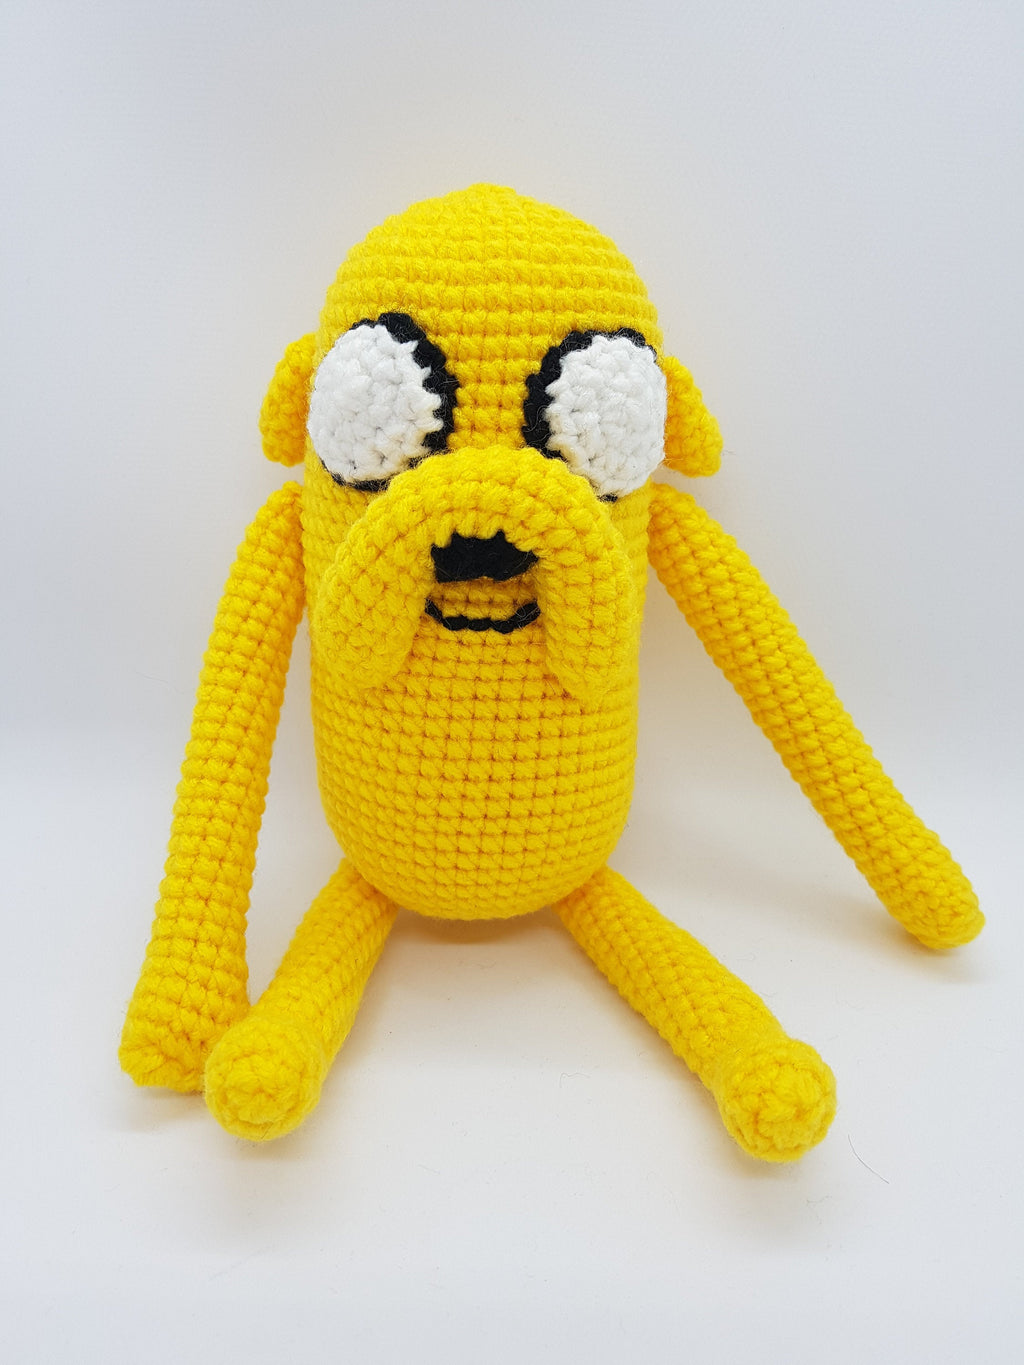 jake the dog from adventuretime